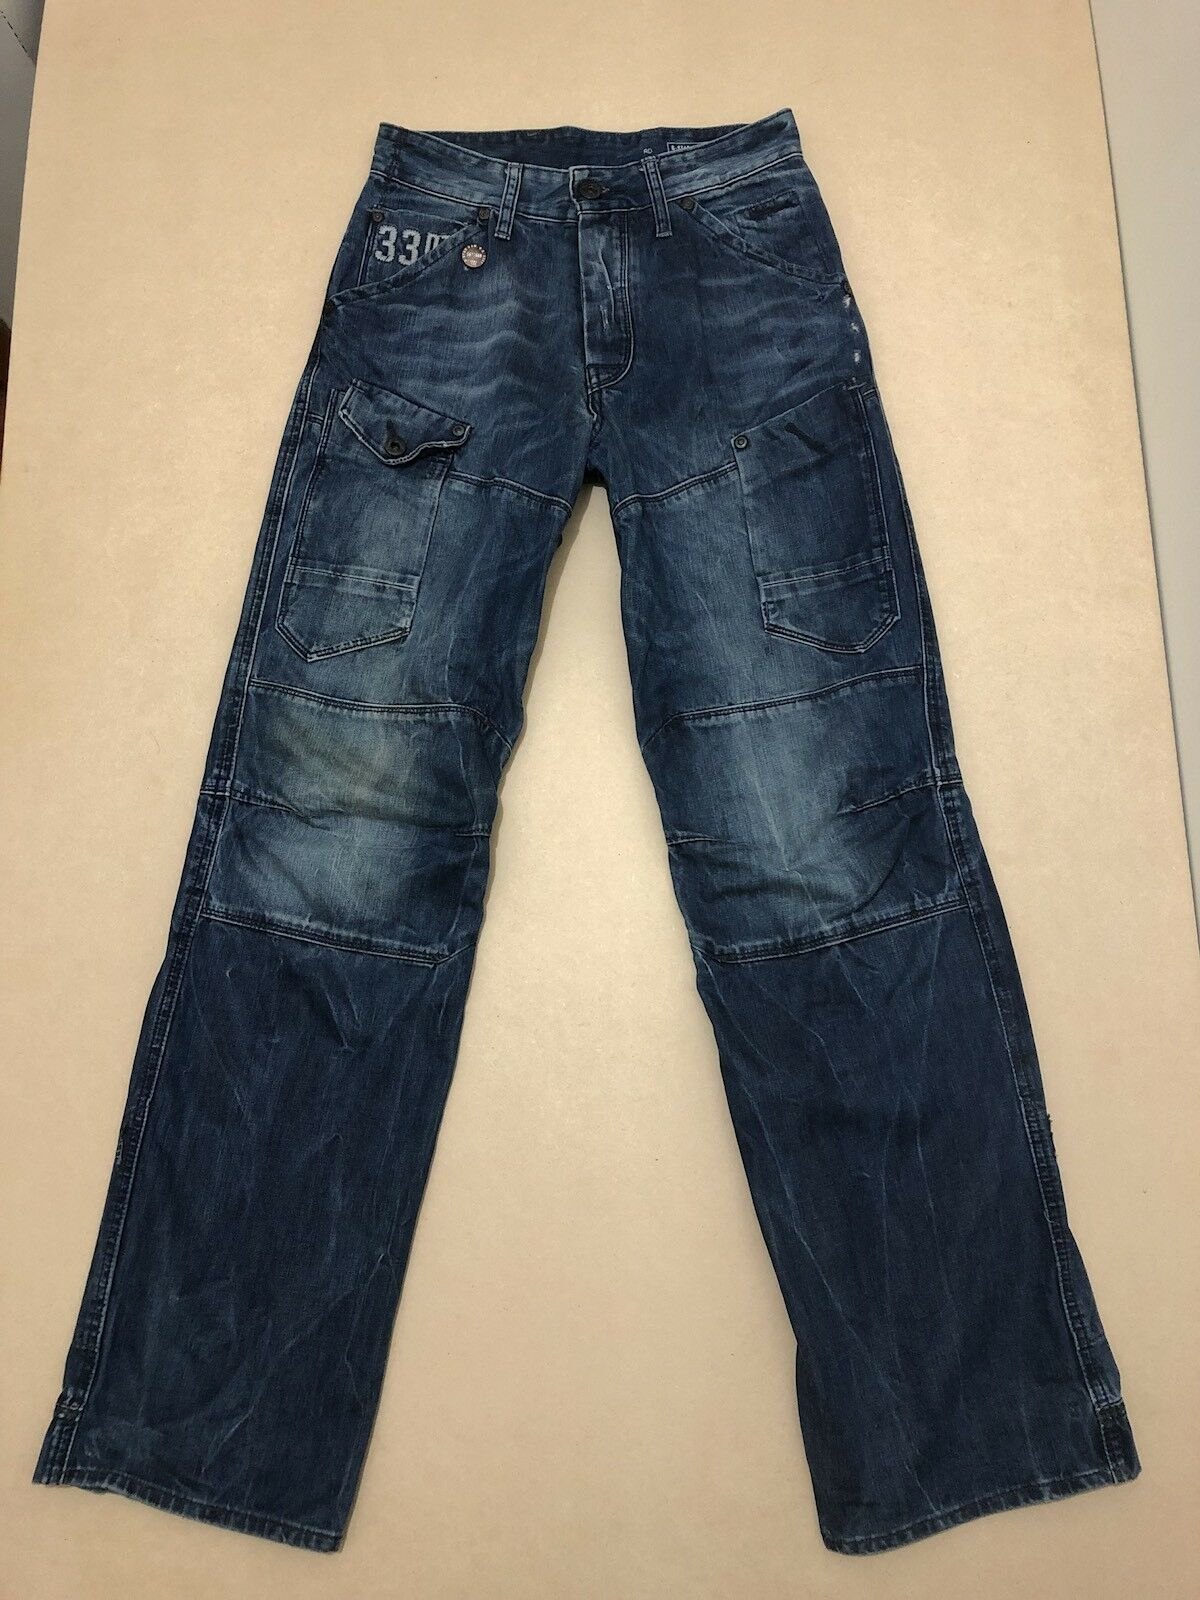 G STAR RAW JEANS MENS  28   32  GREAT COND   GENERAL 5620 LOOSE   DENIM PANTS